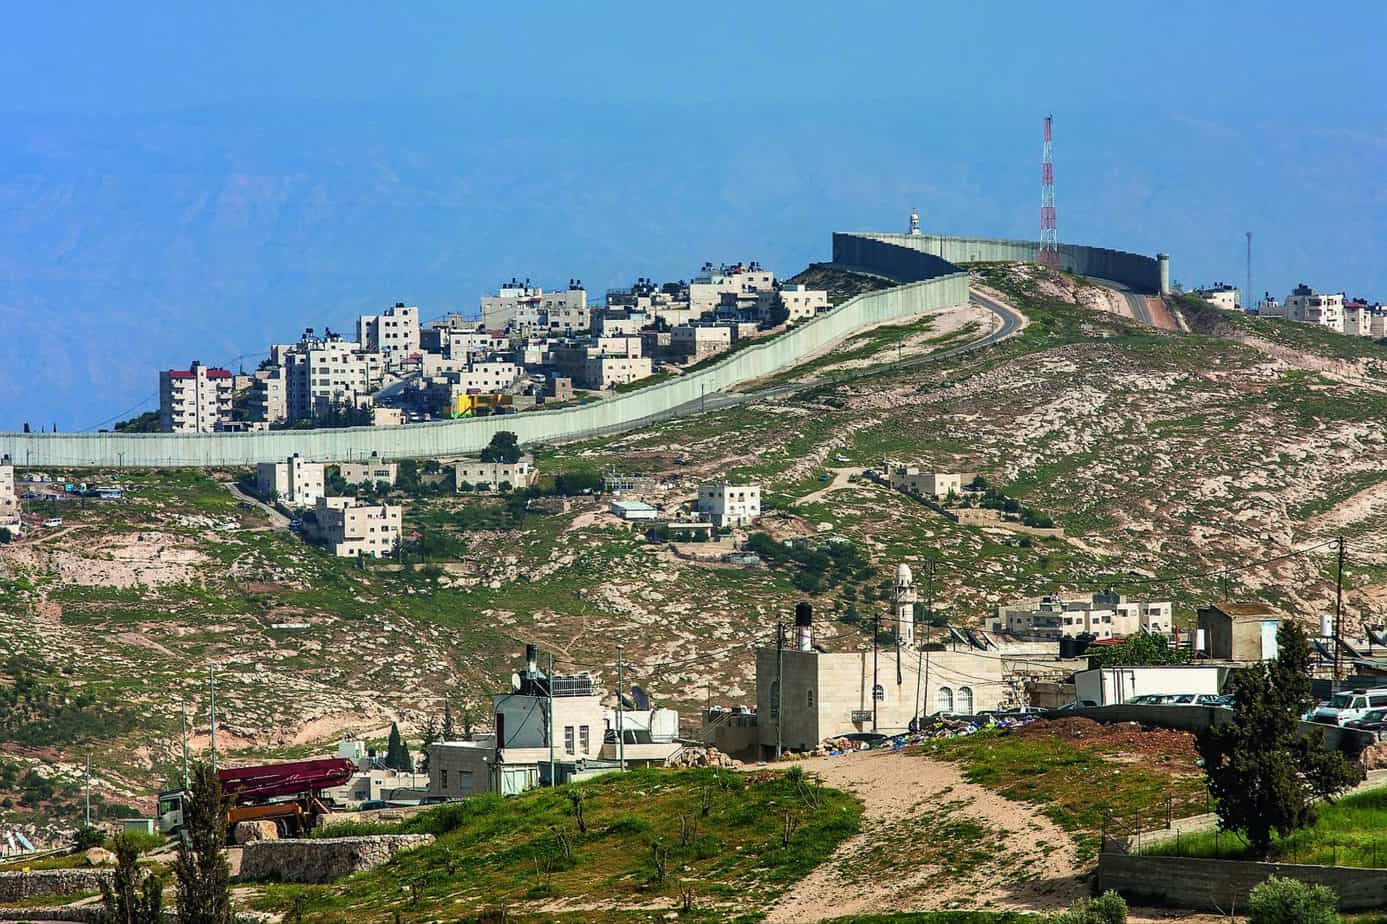 Re-thinking the EU's approach to Israeli-Palestinian cross-conflict dialogue